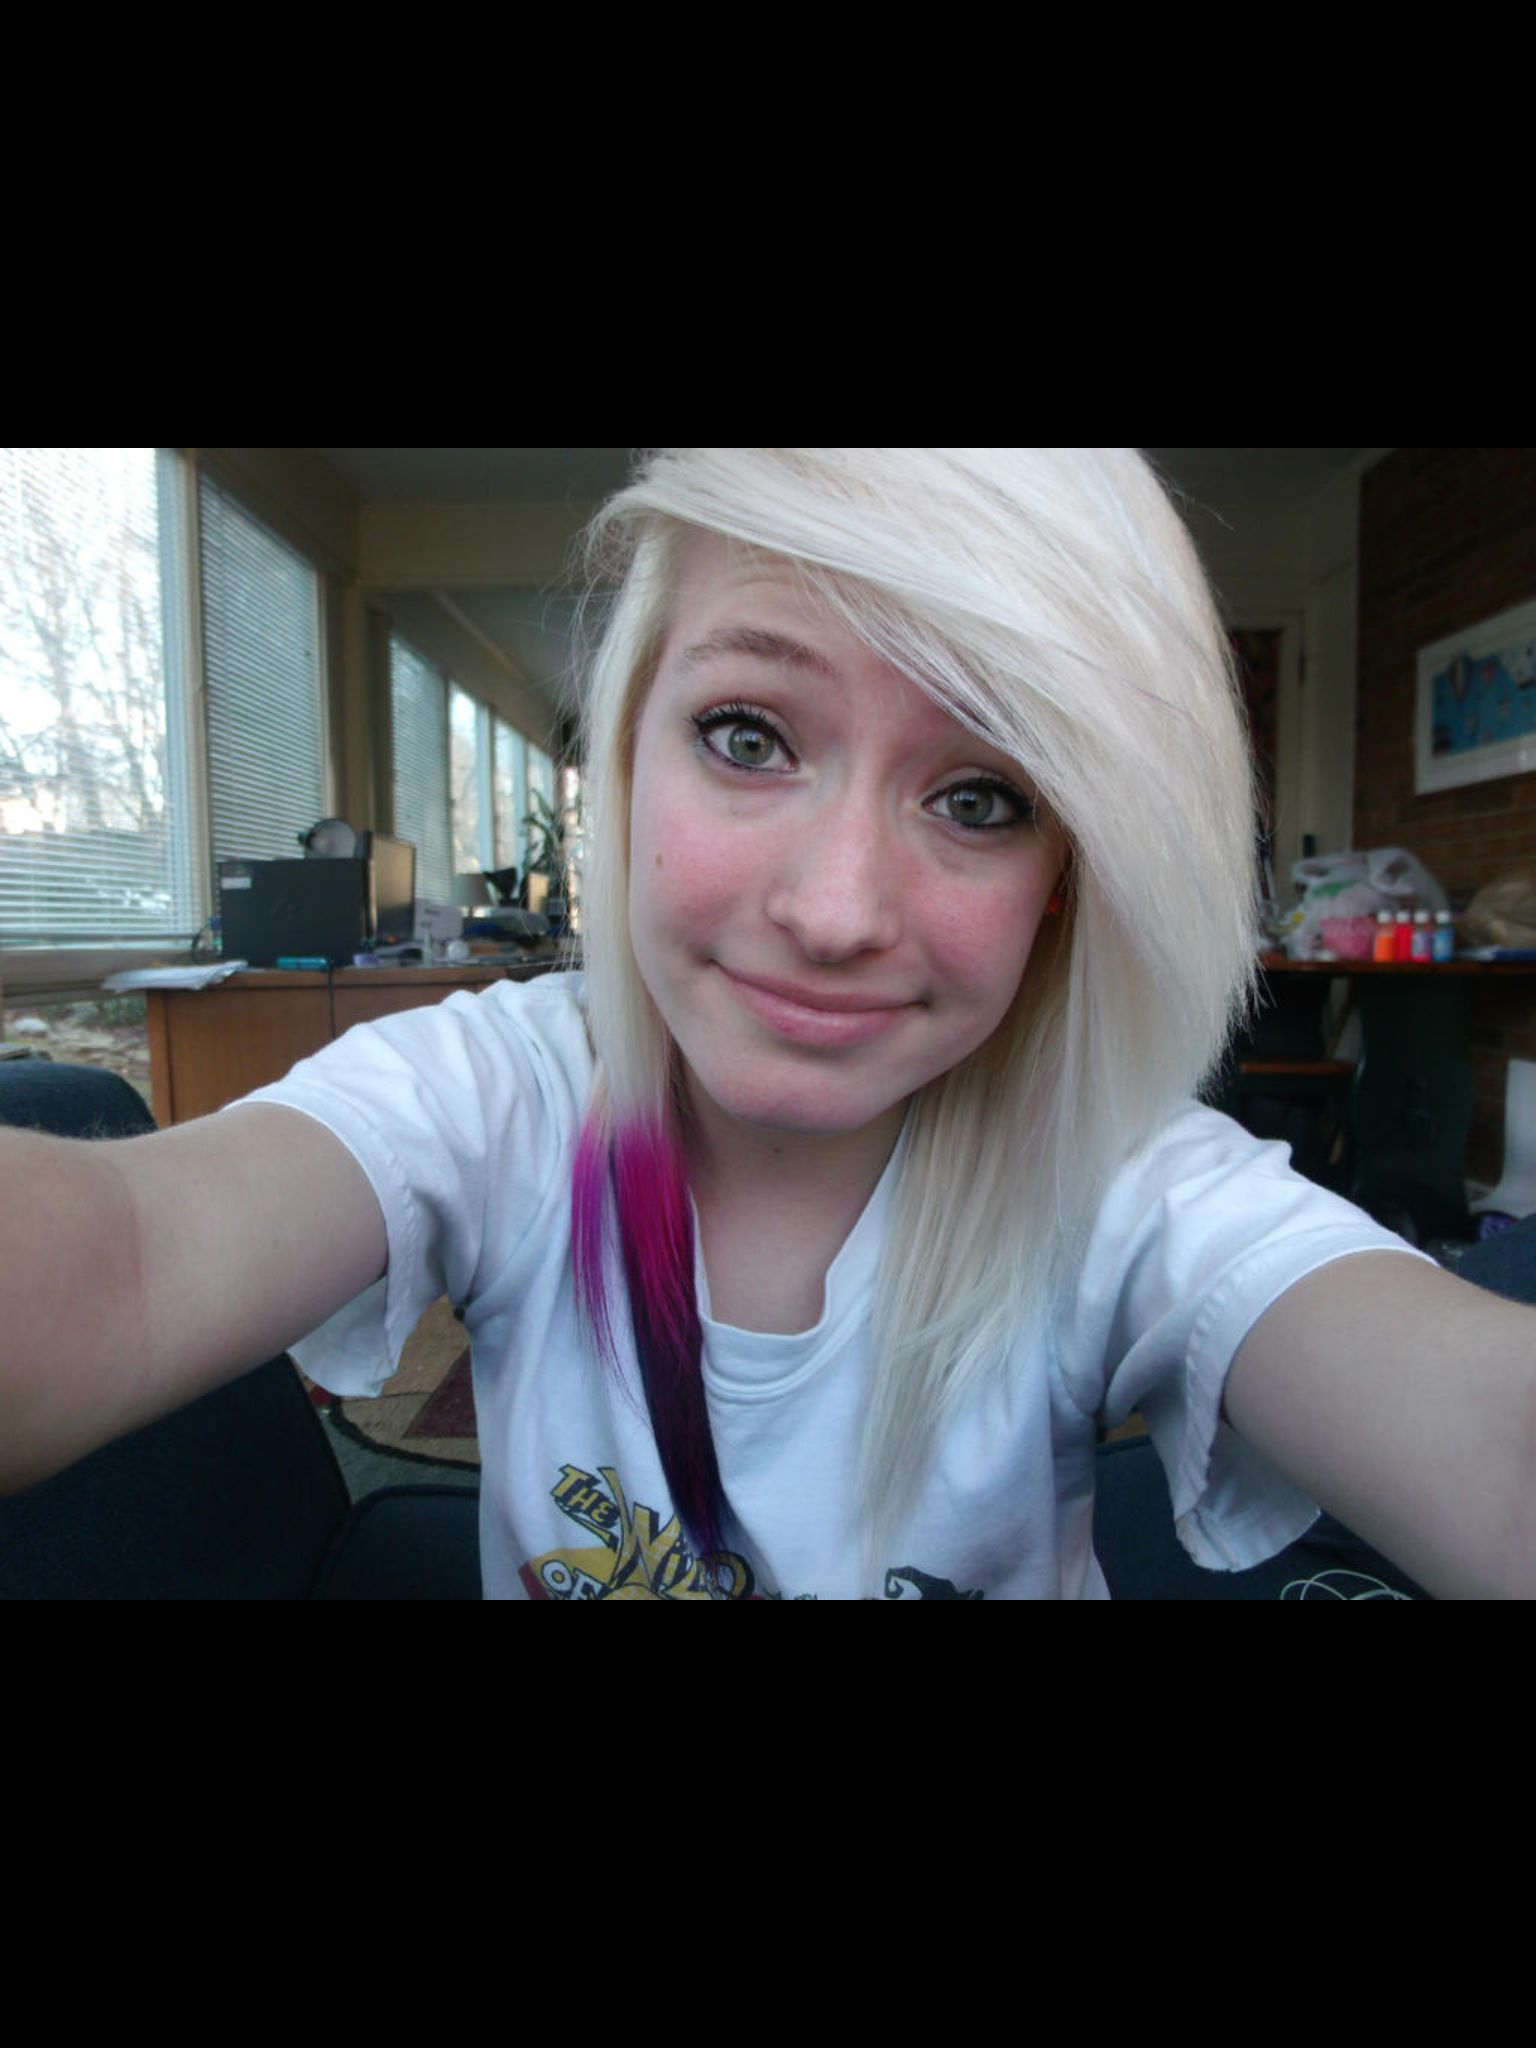 my mom said I could cut my hair like this. but not the color. but still!